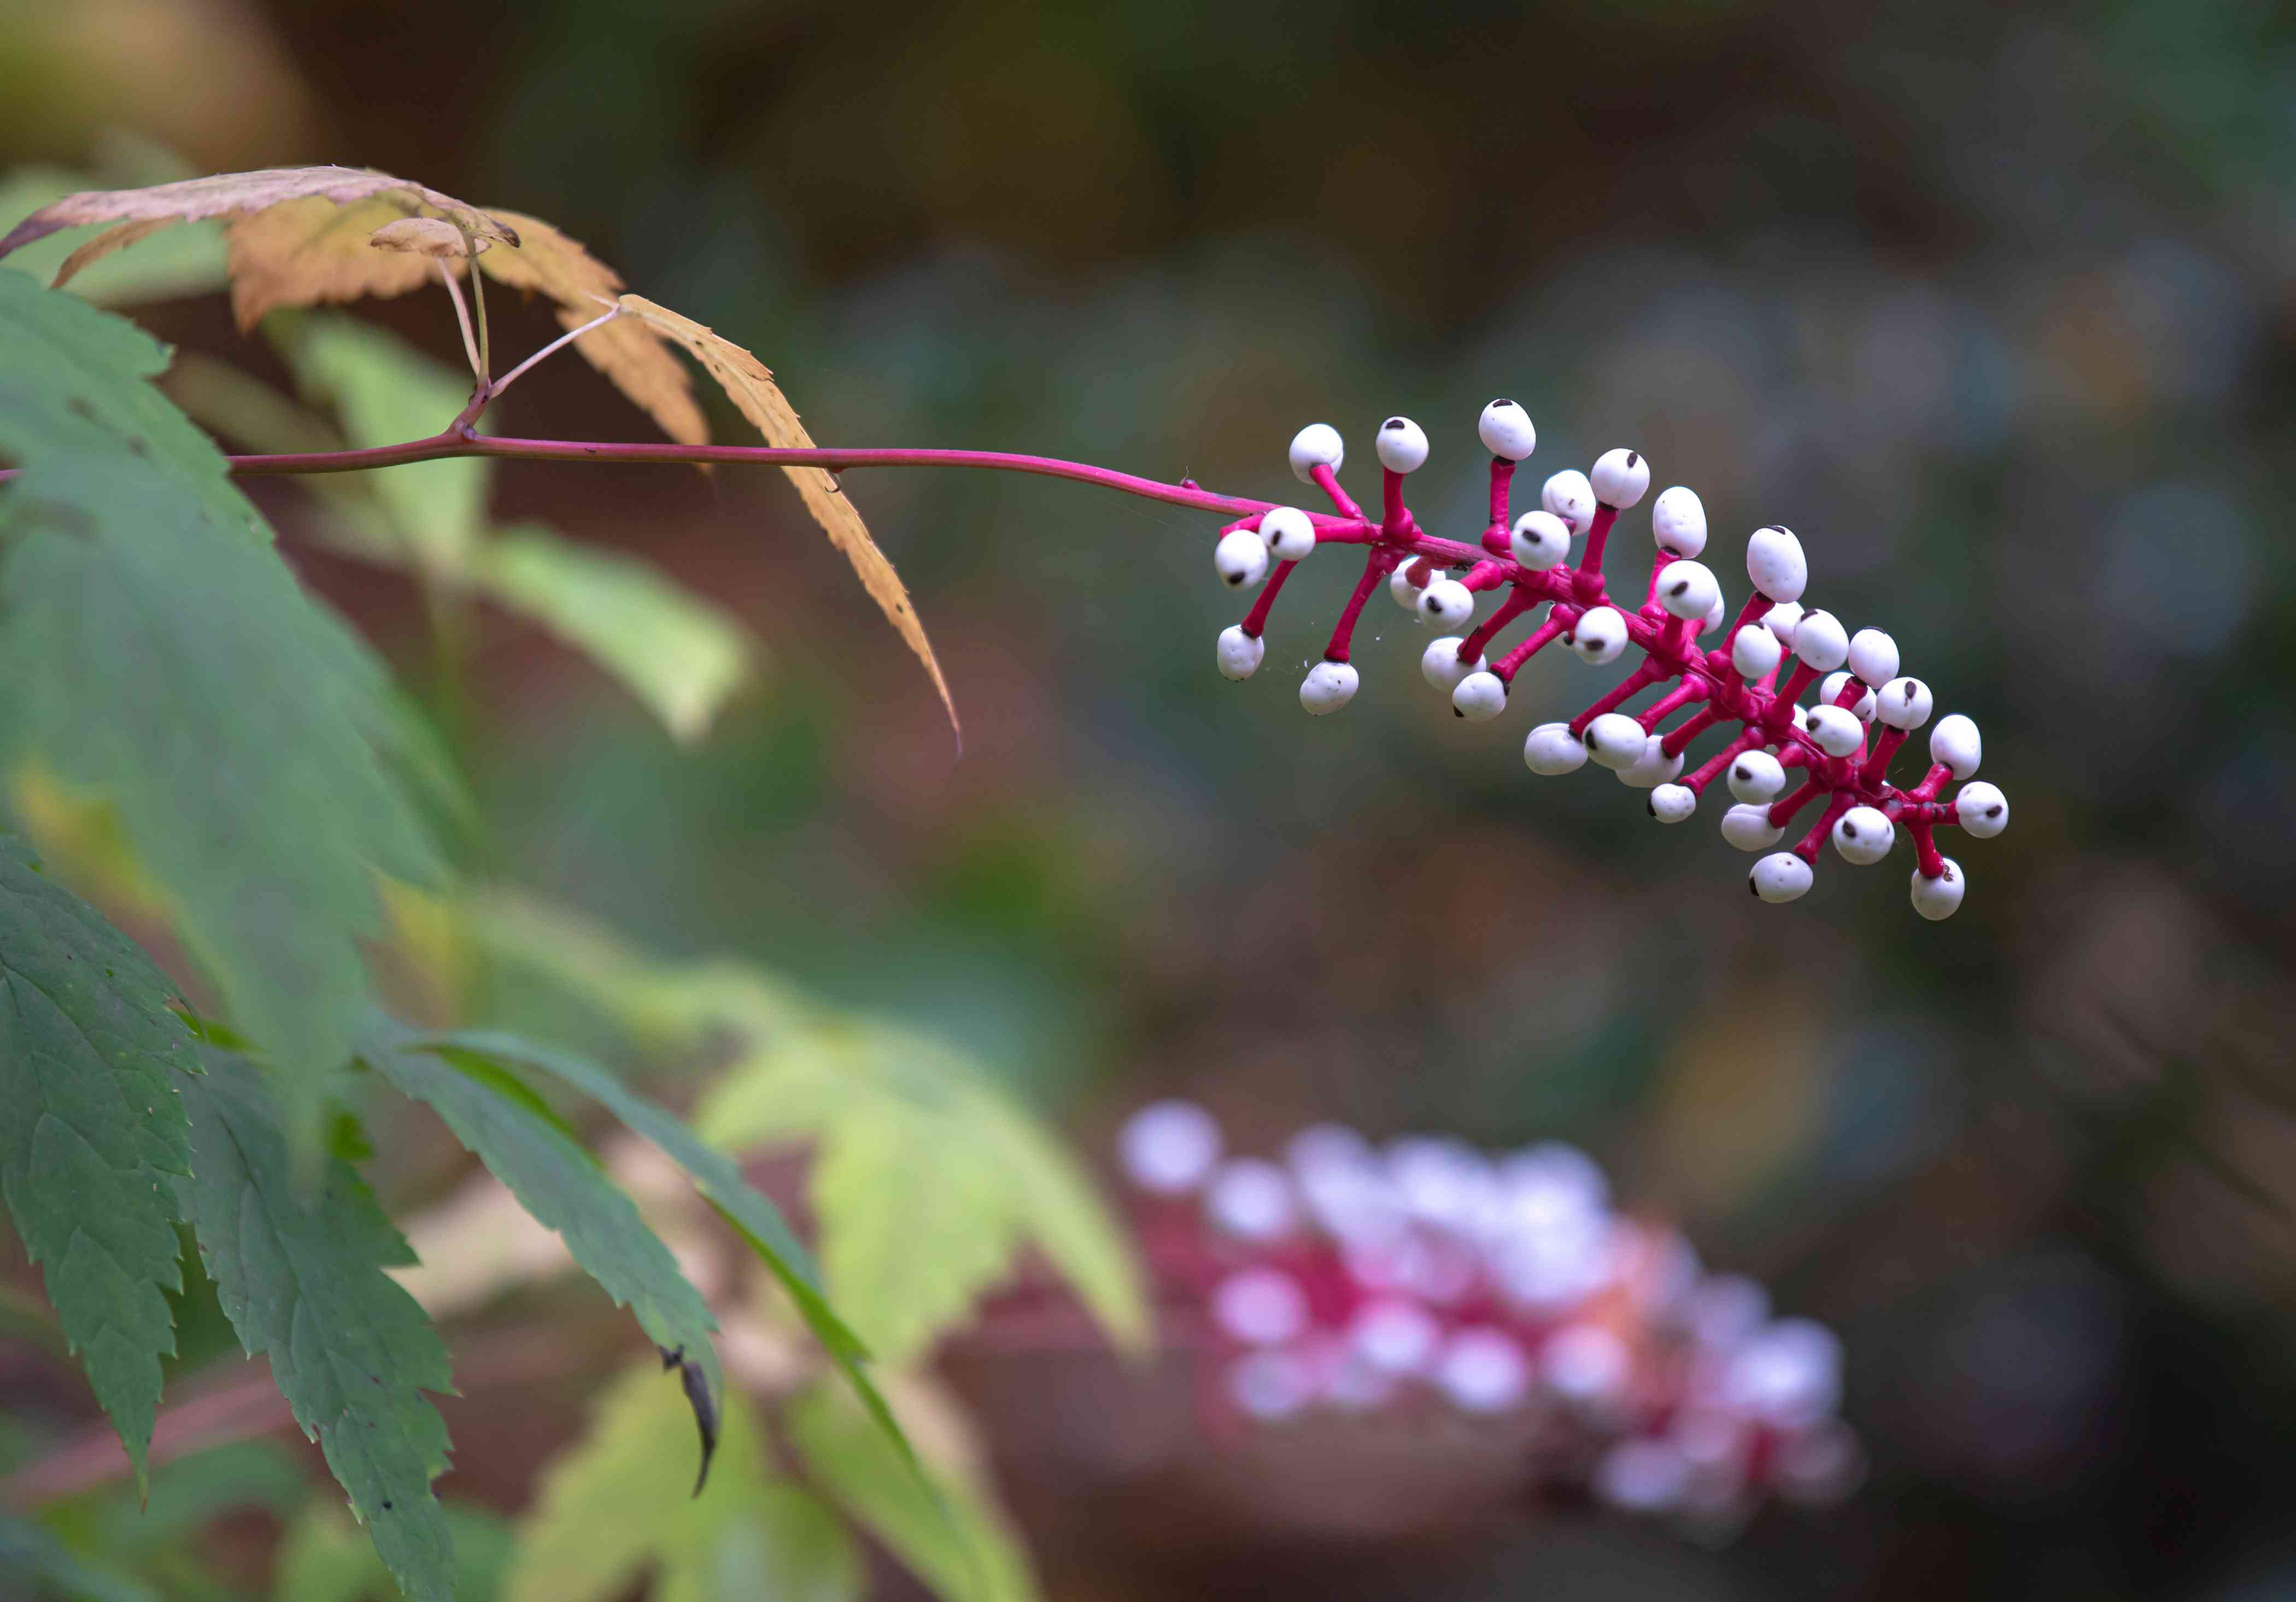 White baneberry plant with pink stem extending with small white berries